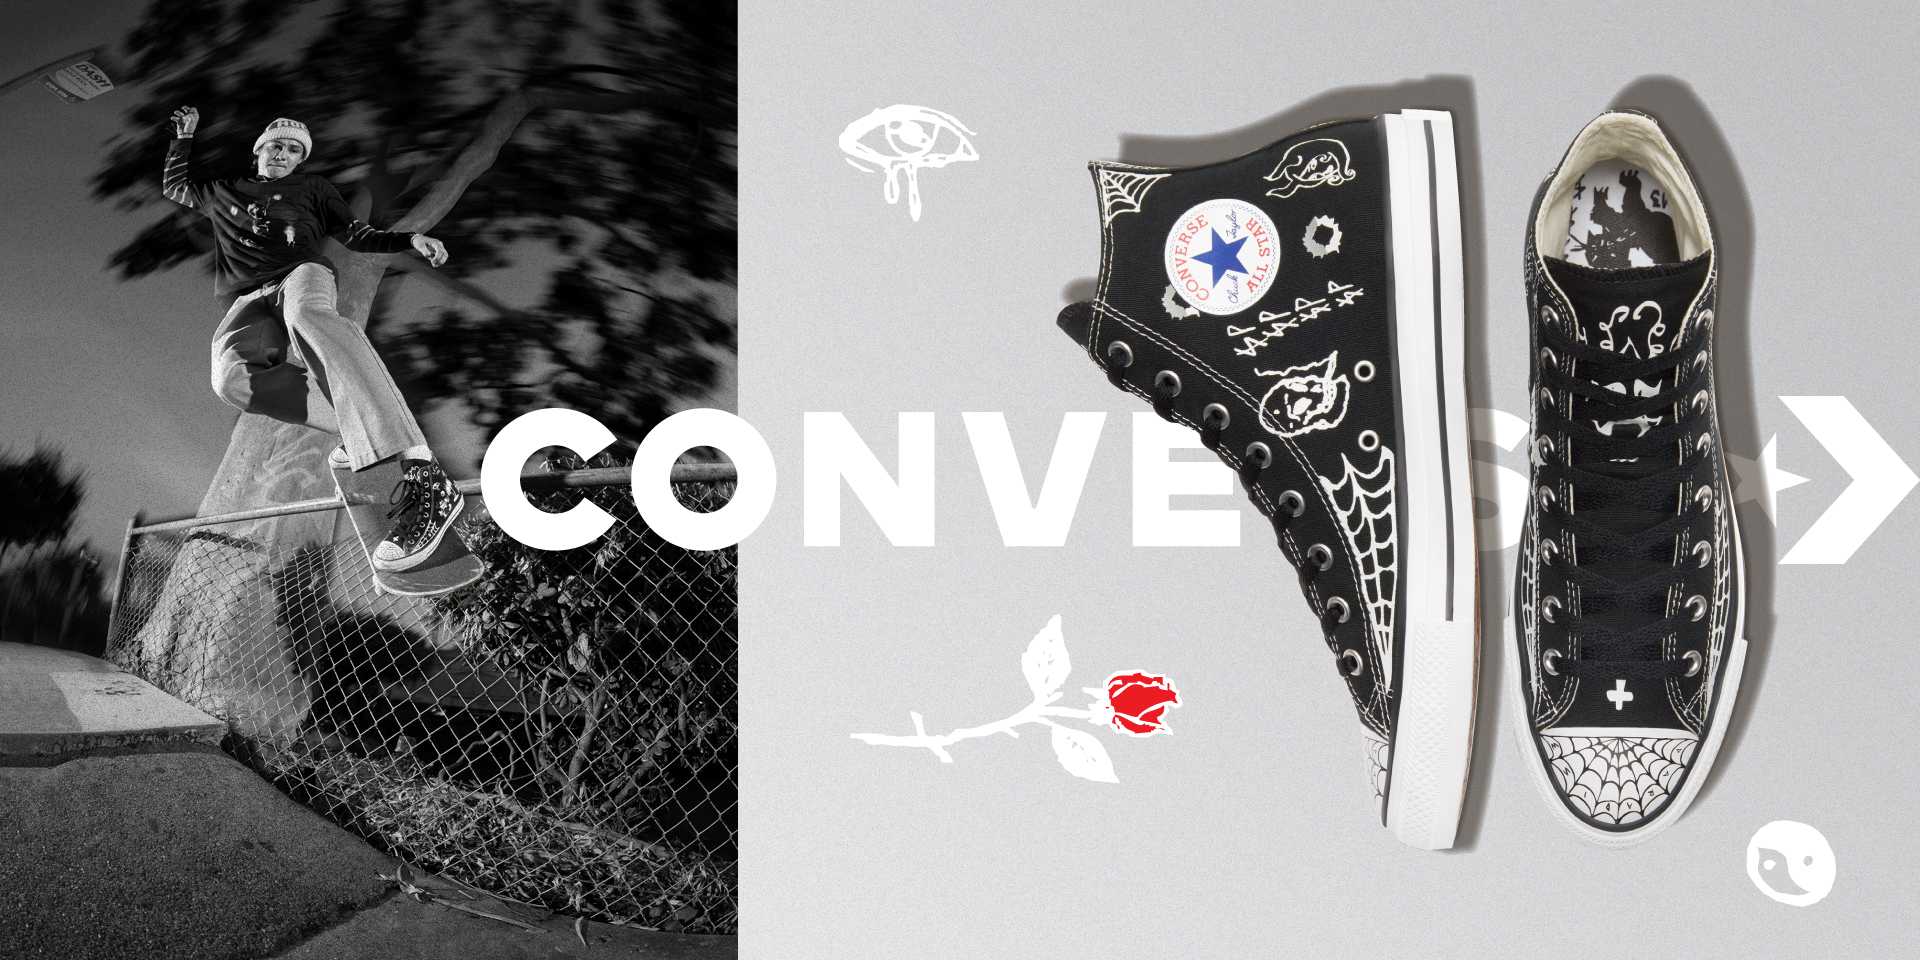 Converse Sean Pablo CTAS Pro - Black White White color, side profile view and top view with various drawn doodles on shoe.